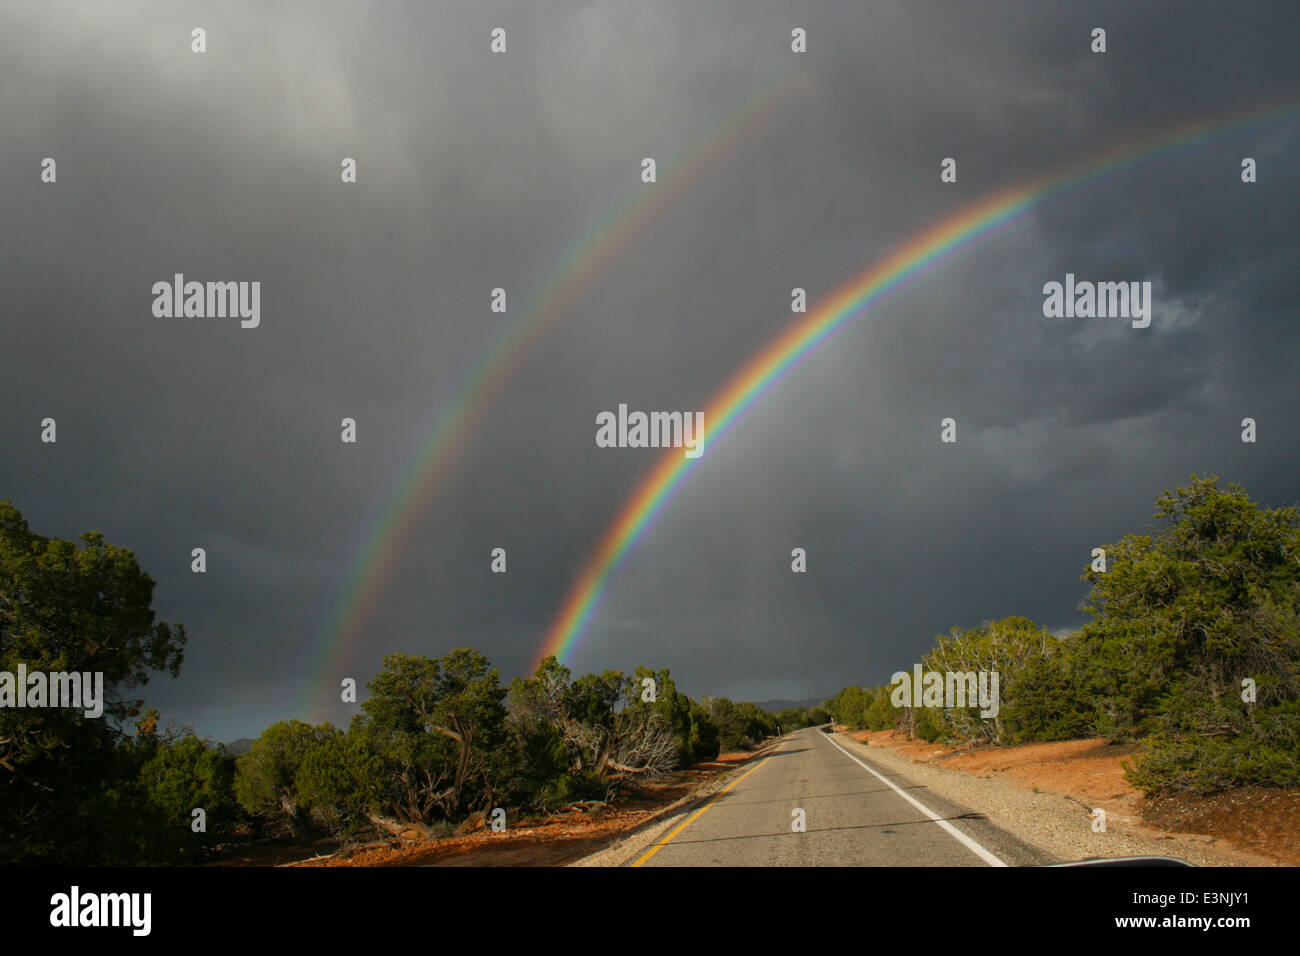 Rainbows - Stock Image